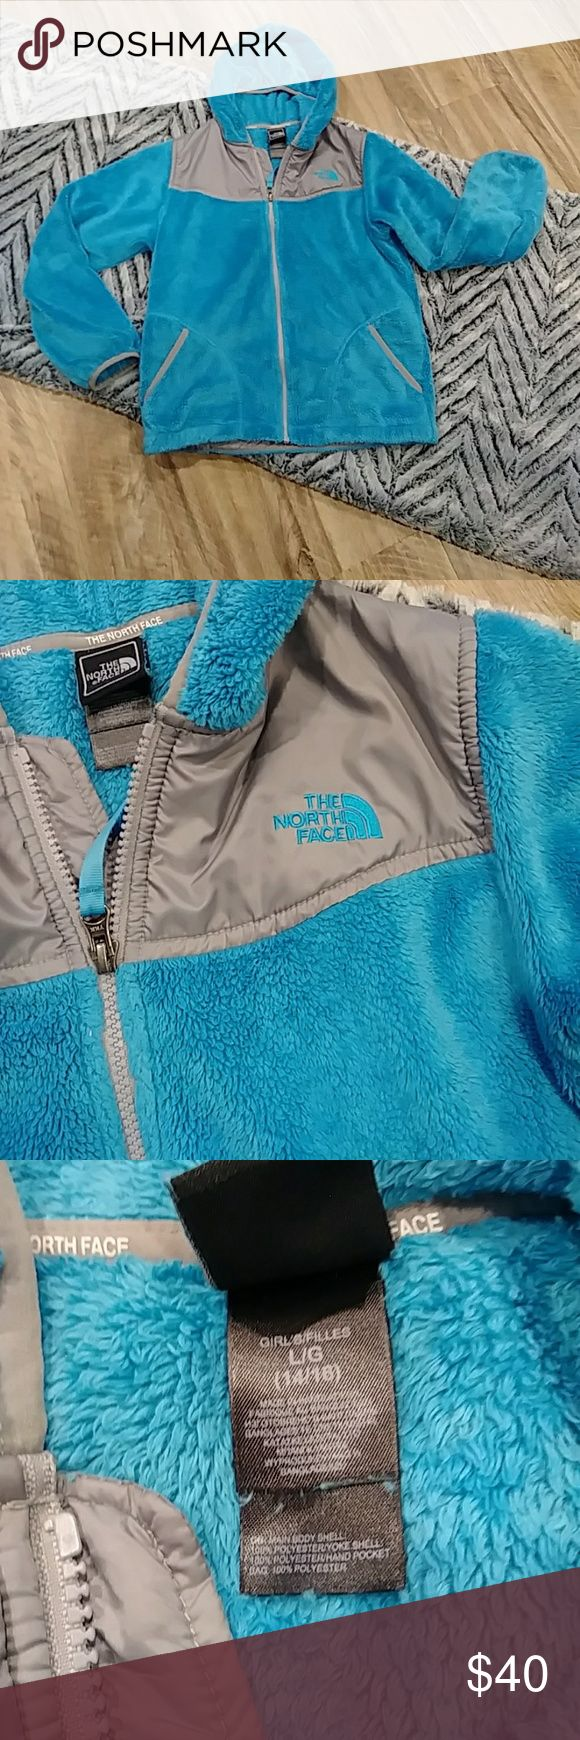 Girls North Face fleece jacket Great used condition this girl's North Face fuzzy fleece jacket fits 14/16. The North Face Jackets & Coats